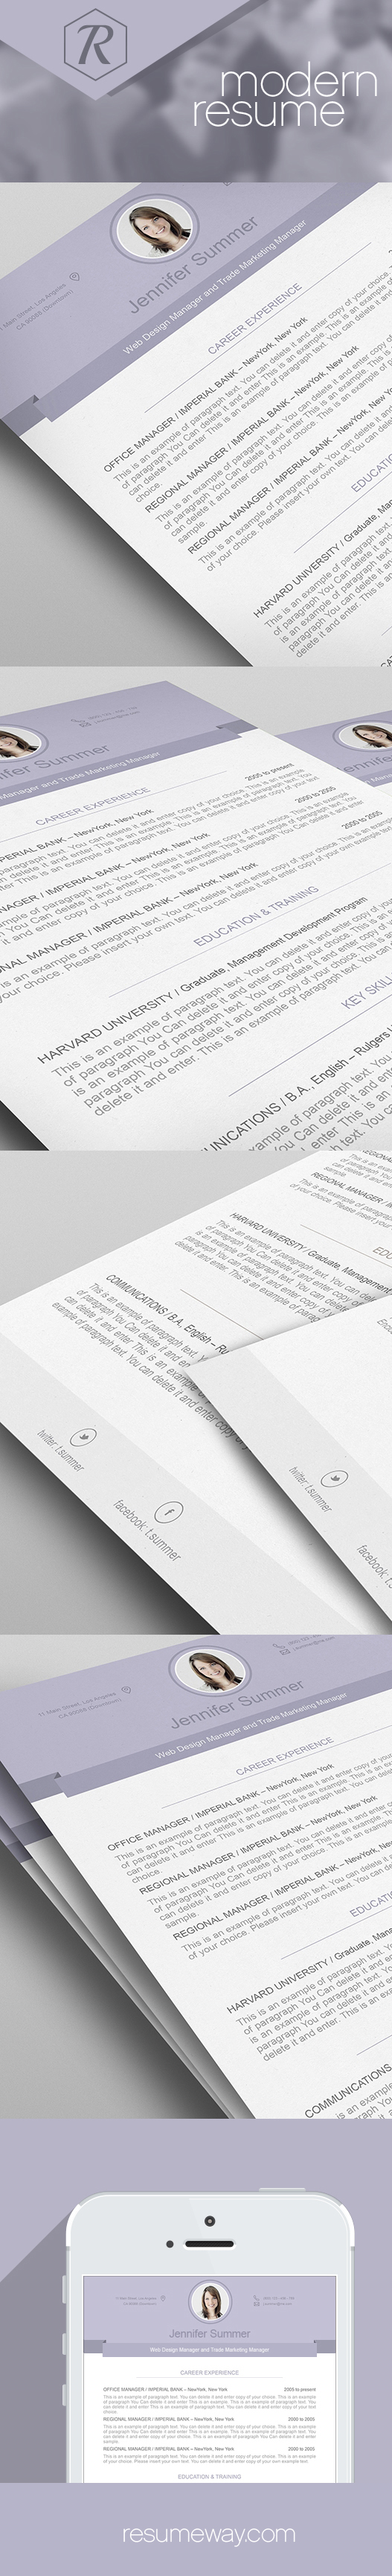 resume template 110490 modern resume templates pinterest